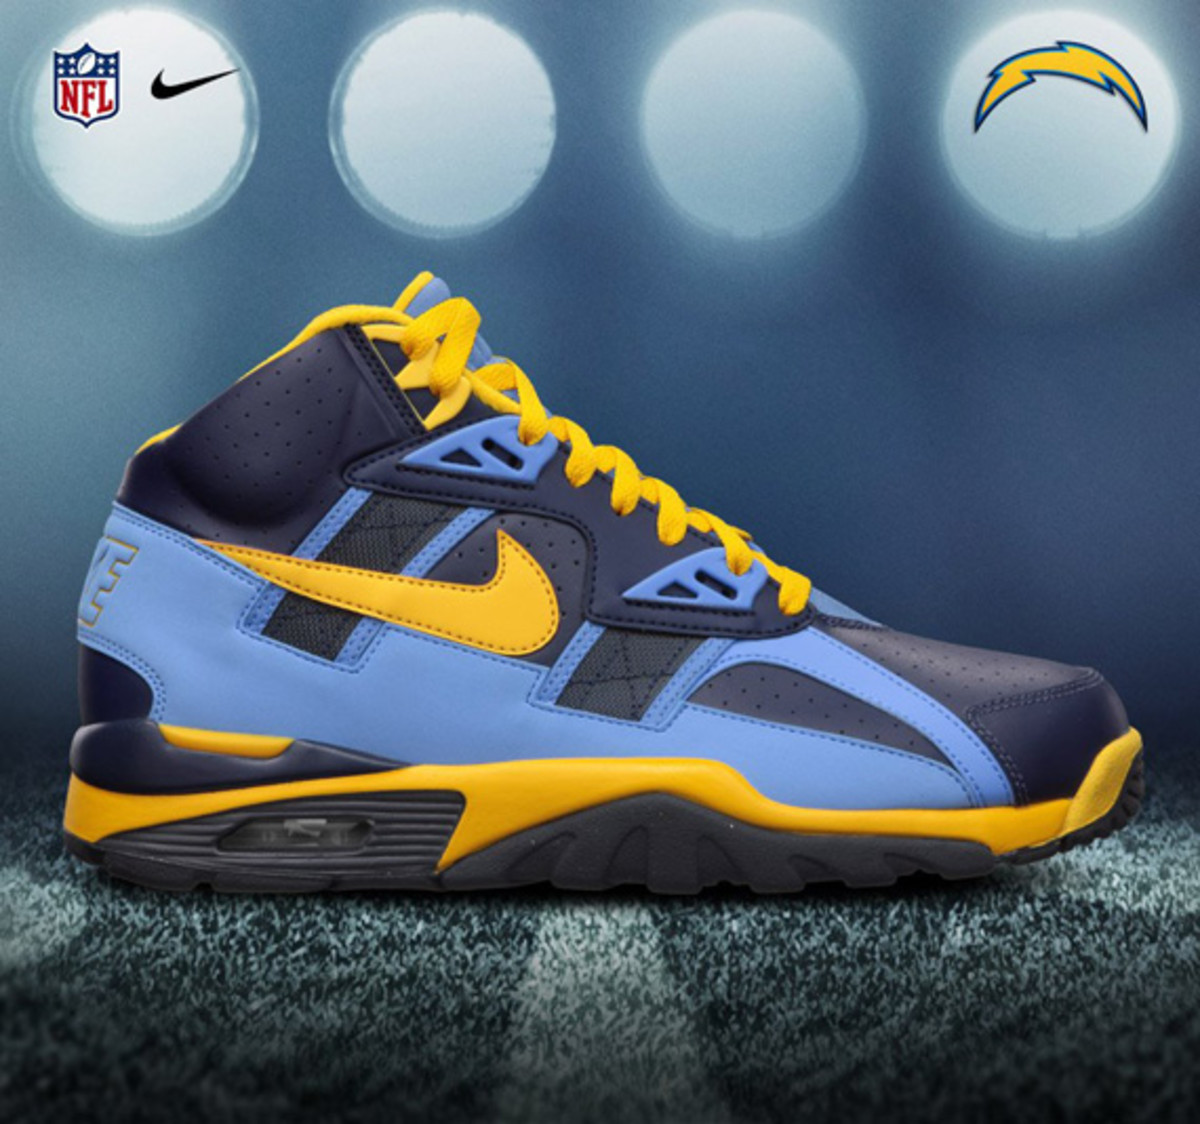 nike-football-Air-Trainer-SC-NFL-2012-nfl-draft-pack-san-diego-chargers-00